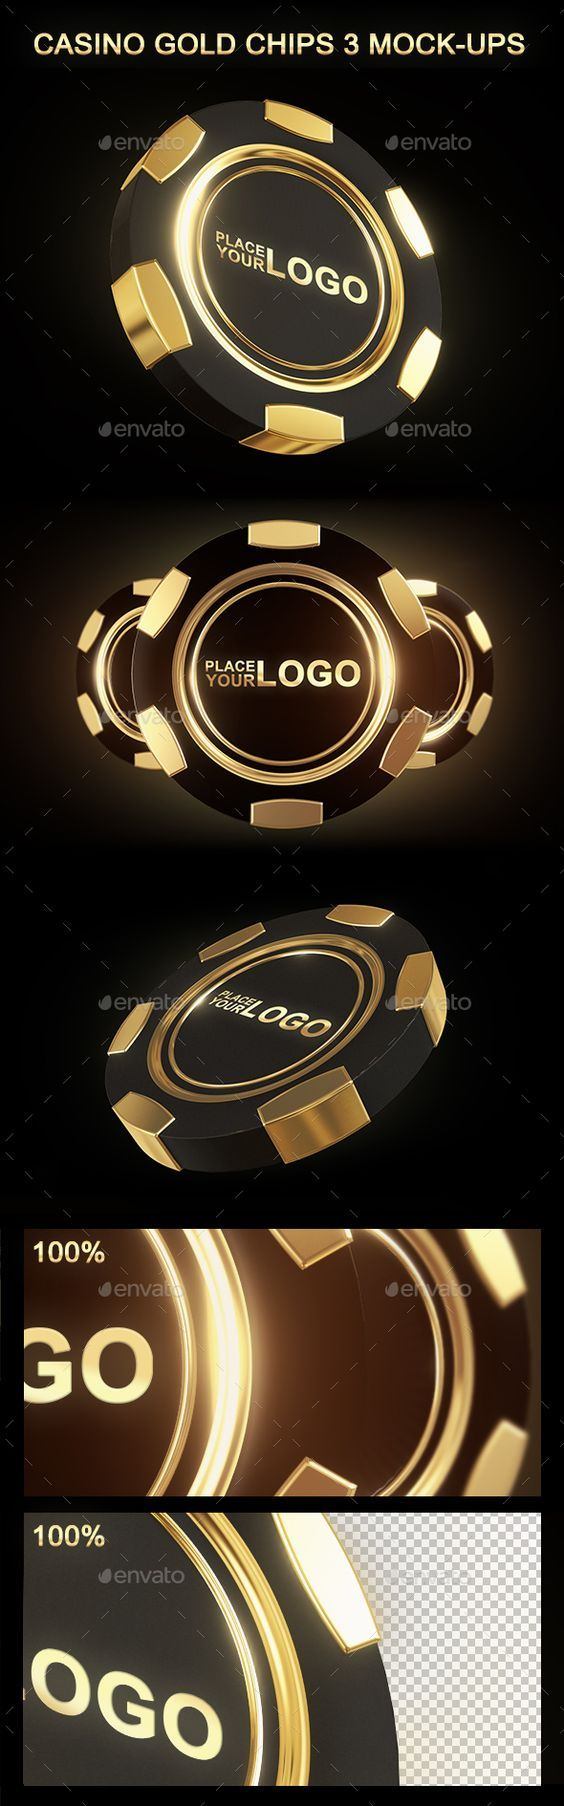 Casino Gold Chip Mockup by gio_keresa Create a realistic Casino Gold Chips display in few seconds. These PSD files uses the Smart-Object feature, so you can replace the